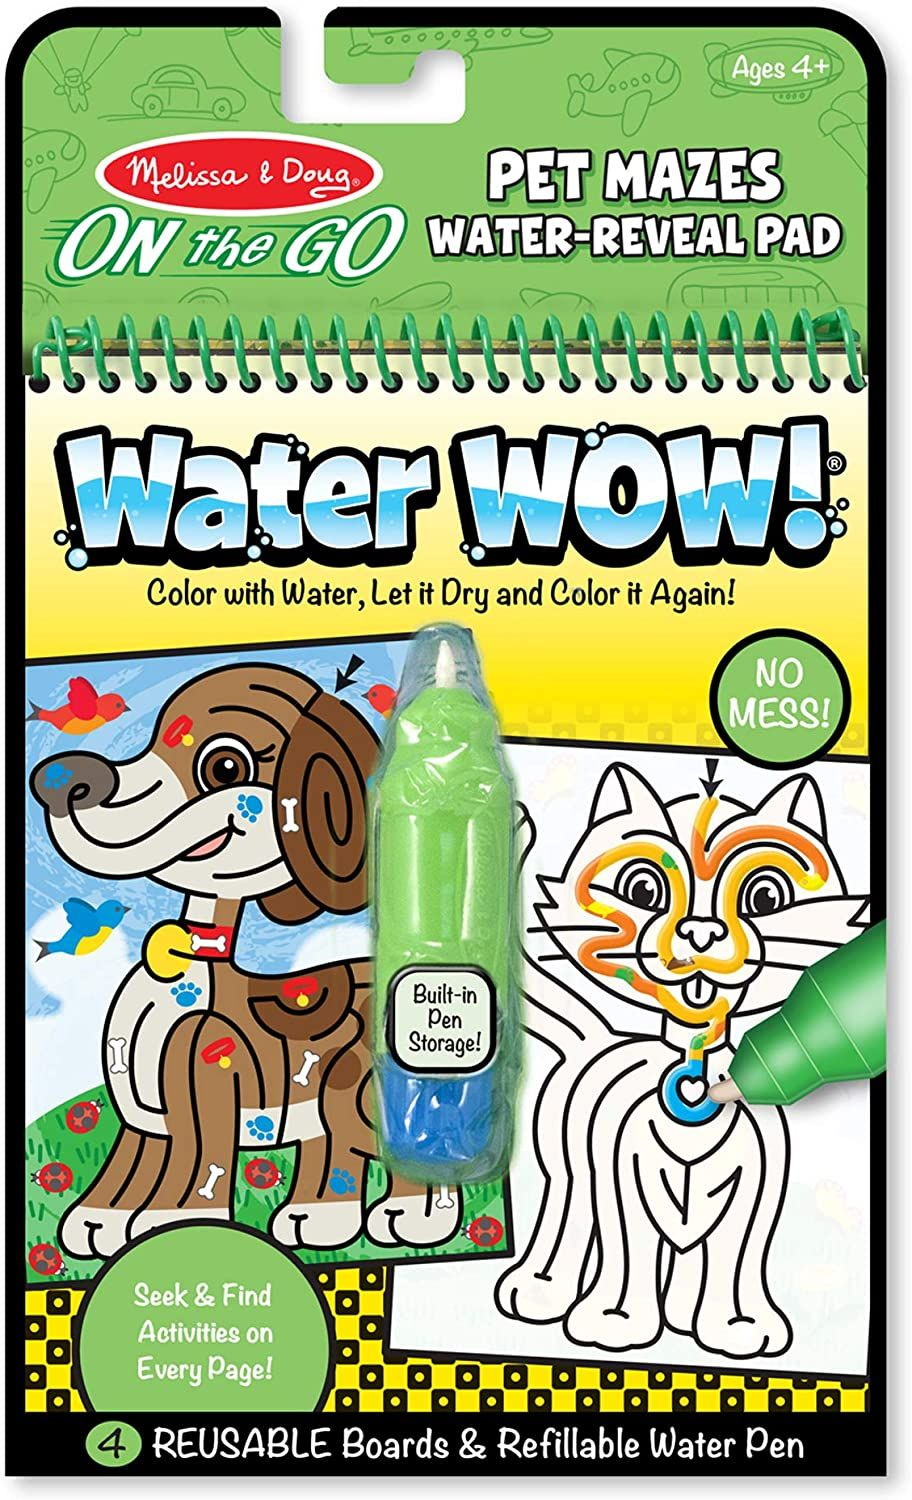 Melissa And Doug On The Go Water Wow Pet Mazes Activity Pad The Original Reusable Coloring Book Refill In 2020 Melissa Doug Painting For Kids Simple Line Drawings